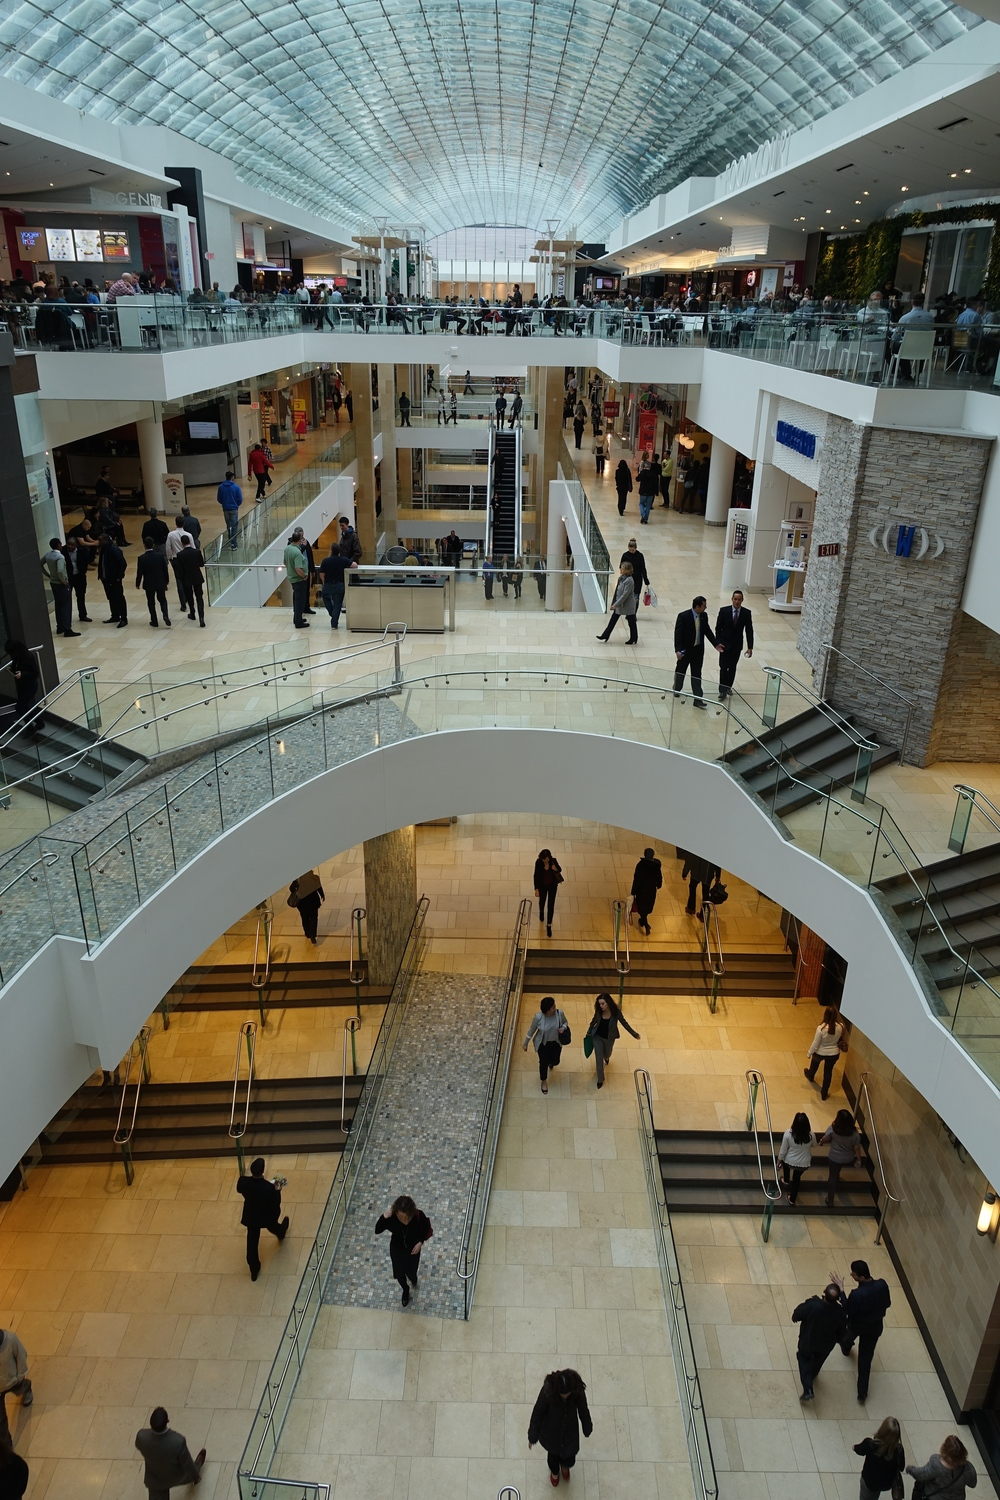 The Core, downtown shopping centre is one of the largest and most attractive indoor shopping centres in Canada, but it has not capture the imagination of suburban Calgarians to come down and shop on weekends. Tourists on the street outside often don't even know it exists.